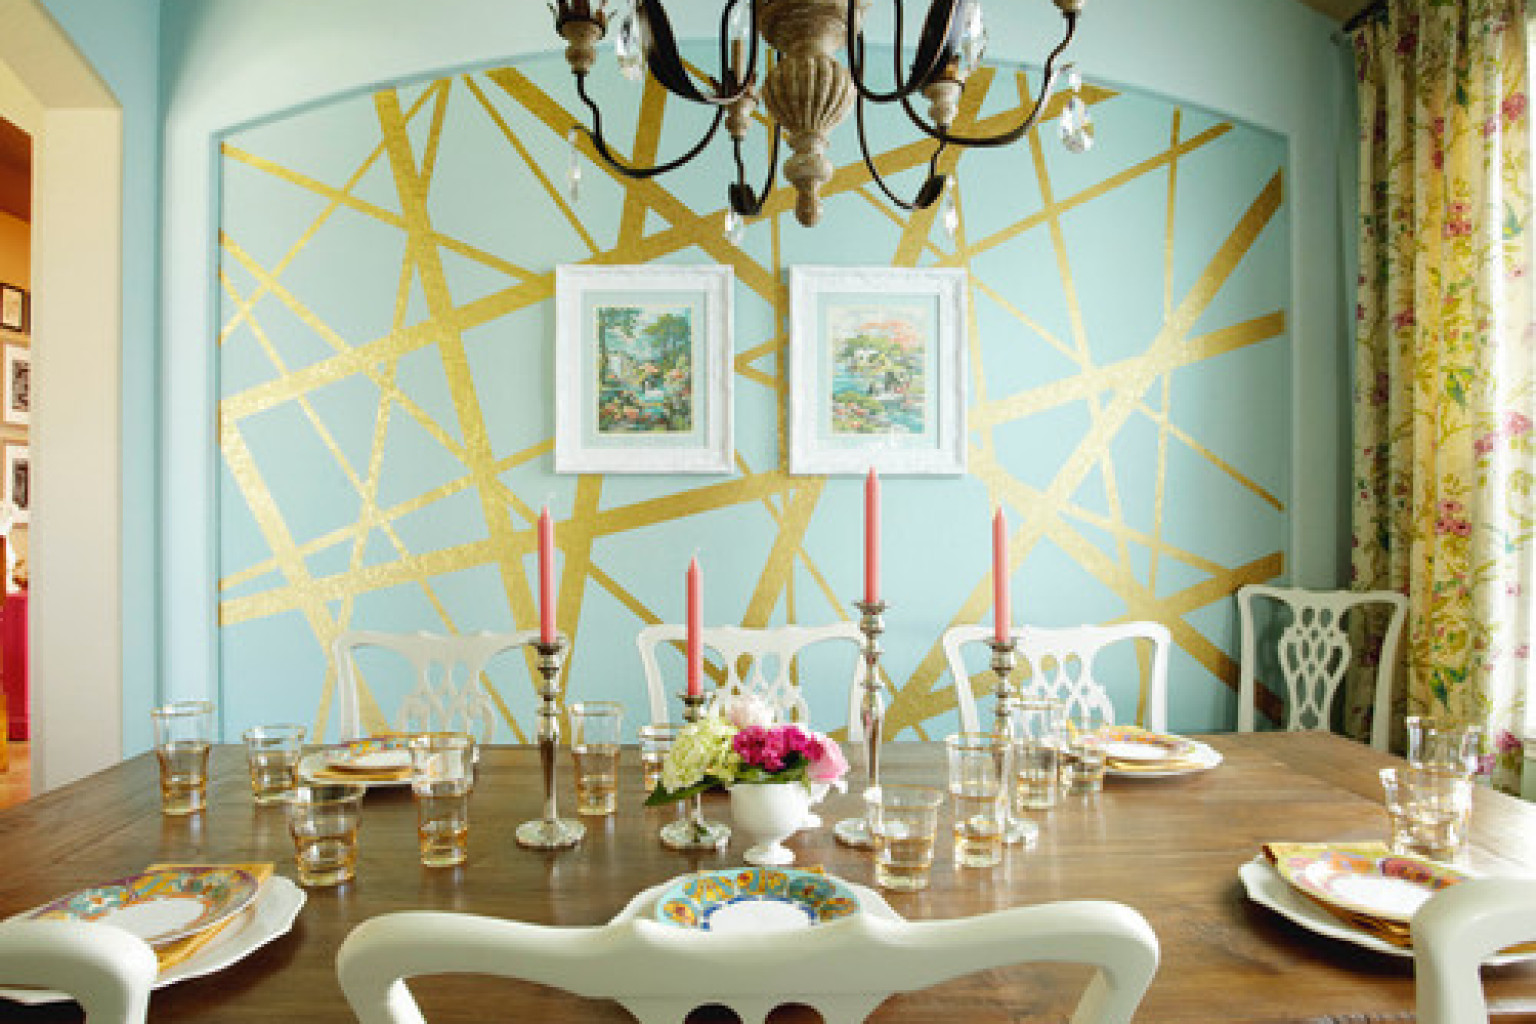 Interior Design Wall Painting: 8 Incredible Interior Paint Ideas From Real Homes That